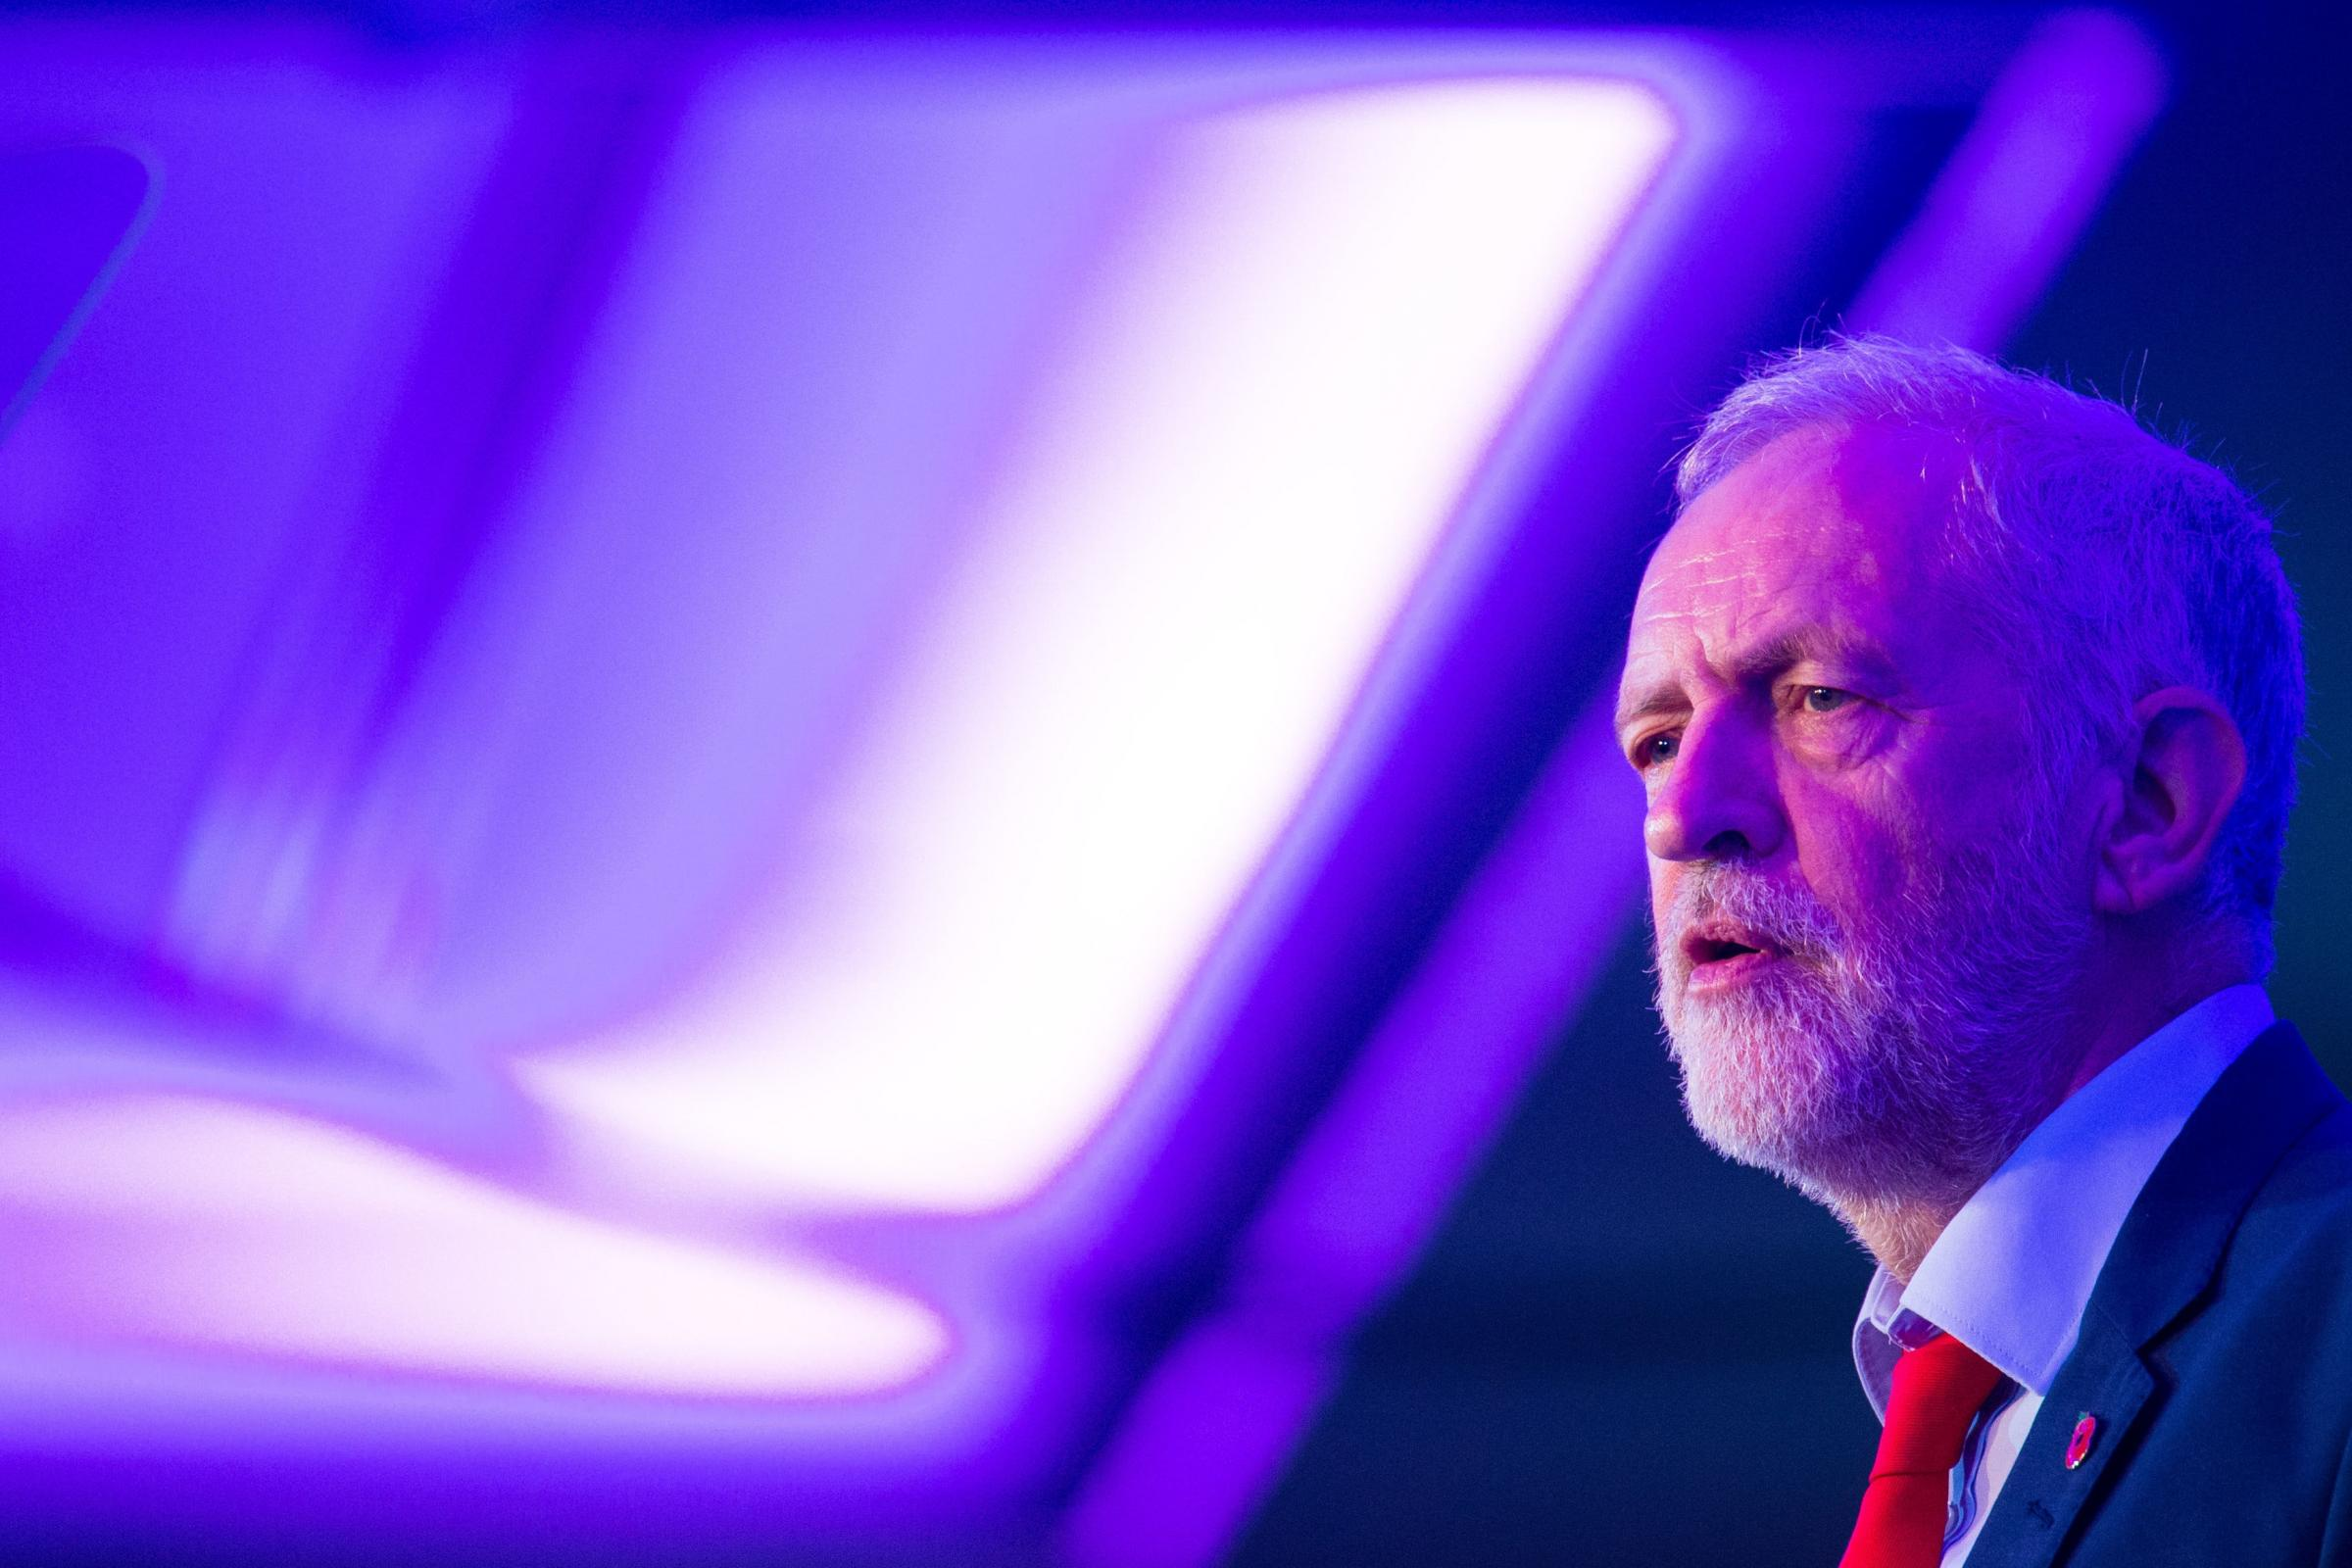 Labour Party leader Jeremy Corbyn addresses the Co-operative Party Centenary Conference., at the Tower Grange Hotel in London.